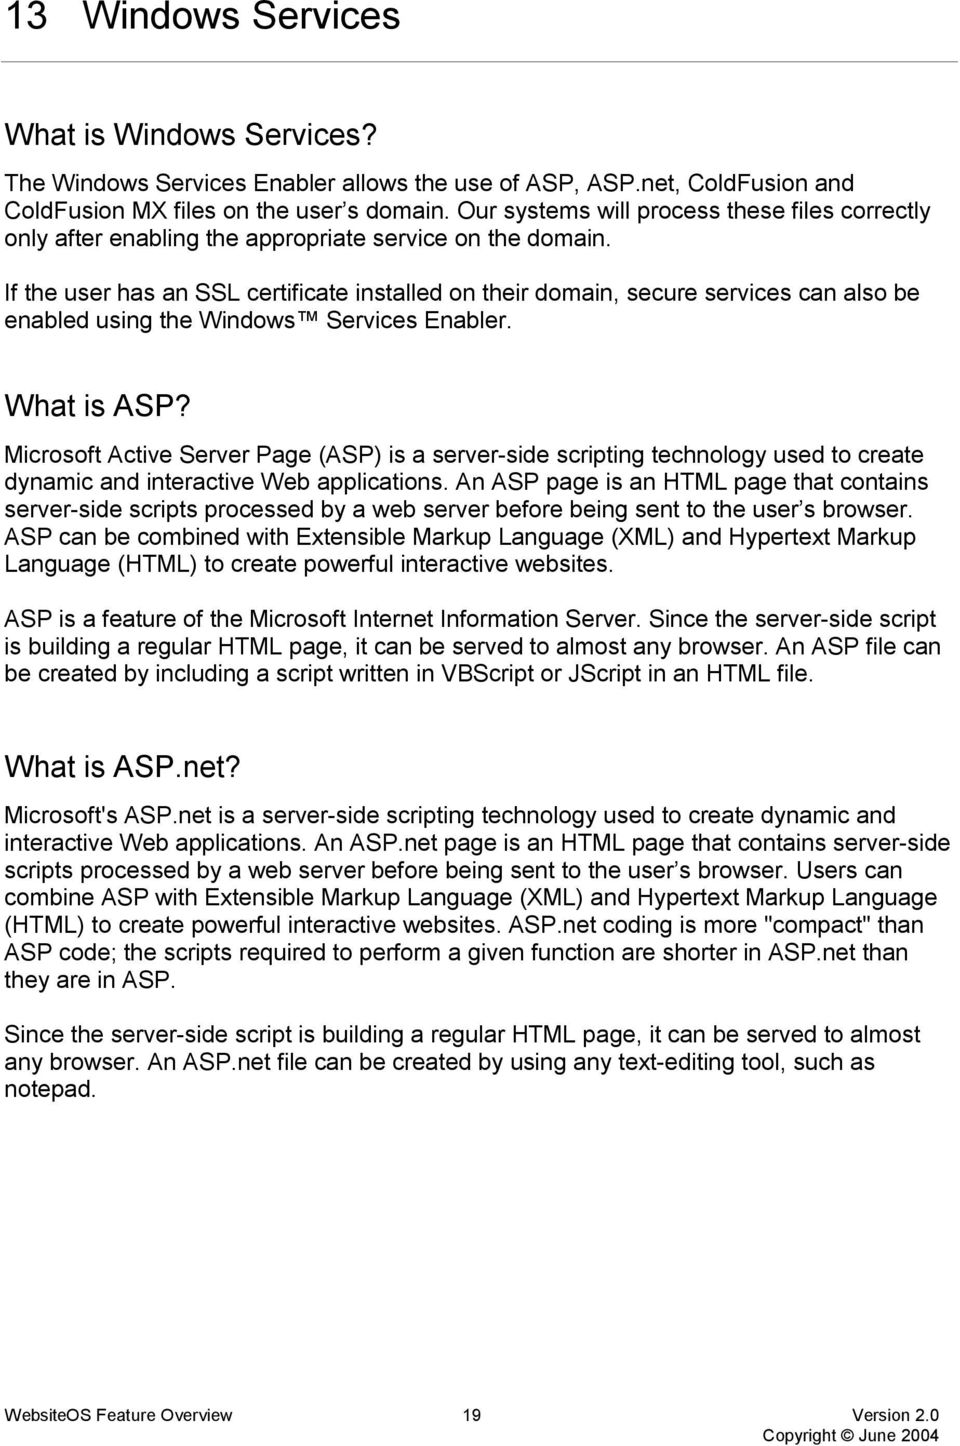 If the user has an SSL certificate installed on their domain, secure services can also be enabled using the Windows Services Enabler. What is ASP?